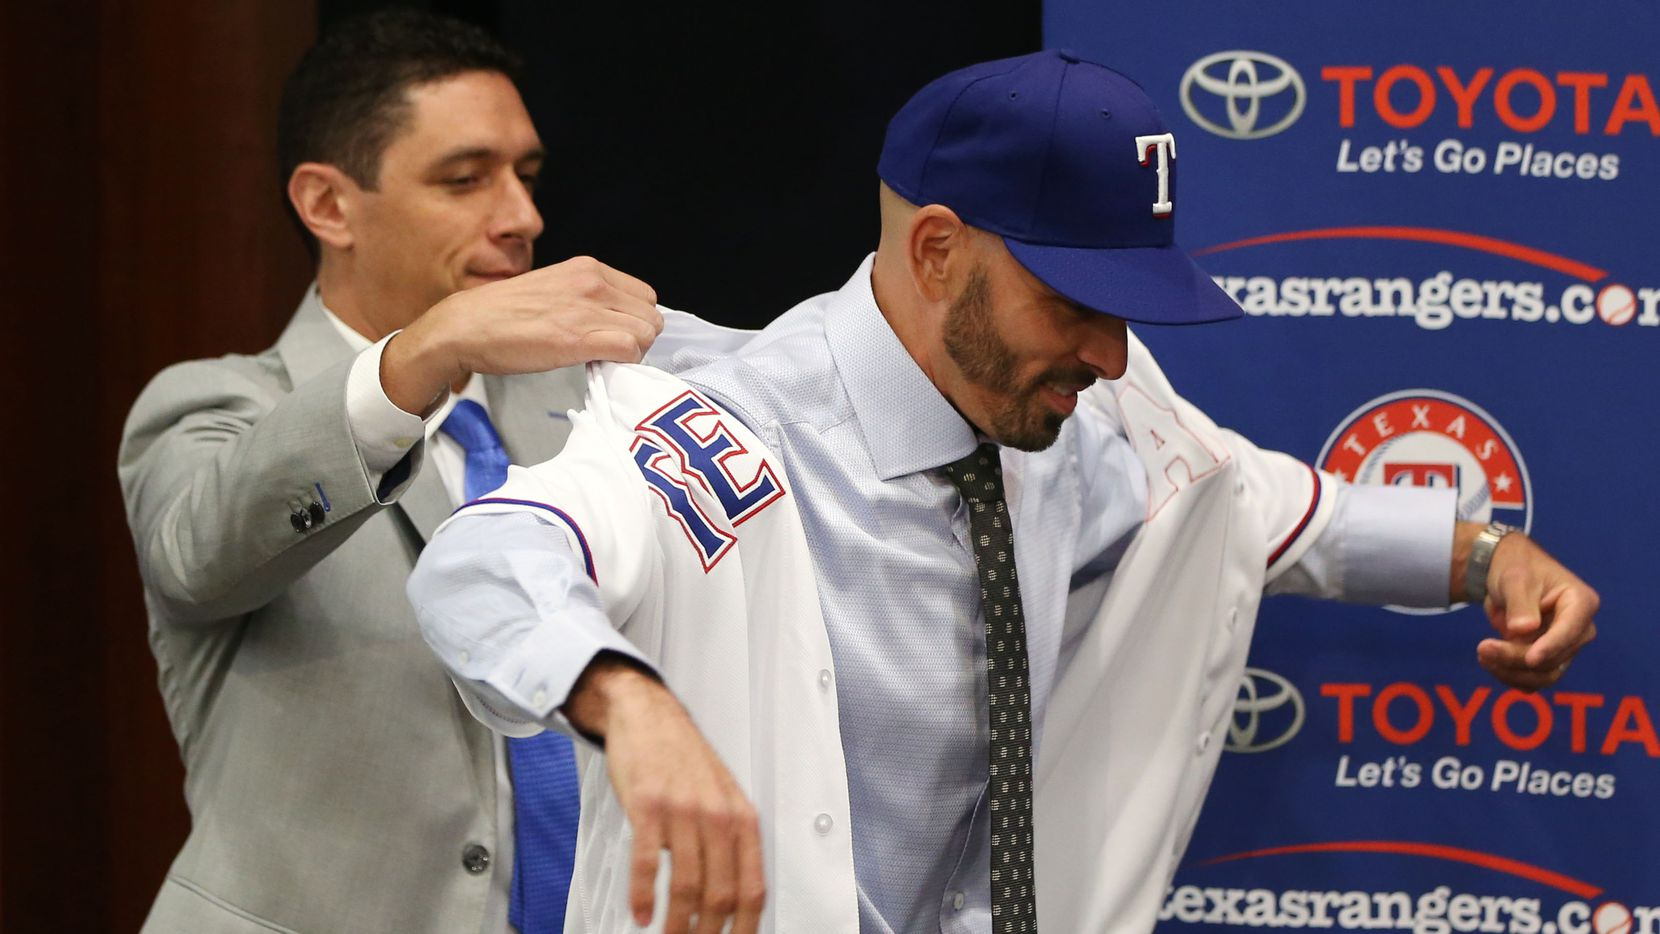 Texas Rangers' new manager Chris Woodward puts on his jersey with help from General Manager Jon Daniels (left) during a press conference announcing his position at Globe Life Park in Arlington, Texas on Monday, Nov. 5, 2018. (Rose Baca/The Dallas Morning News)